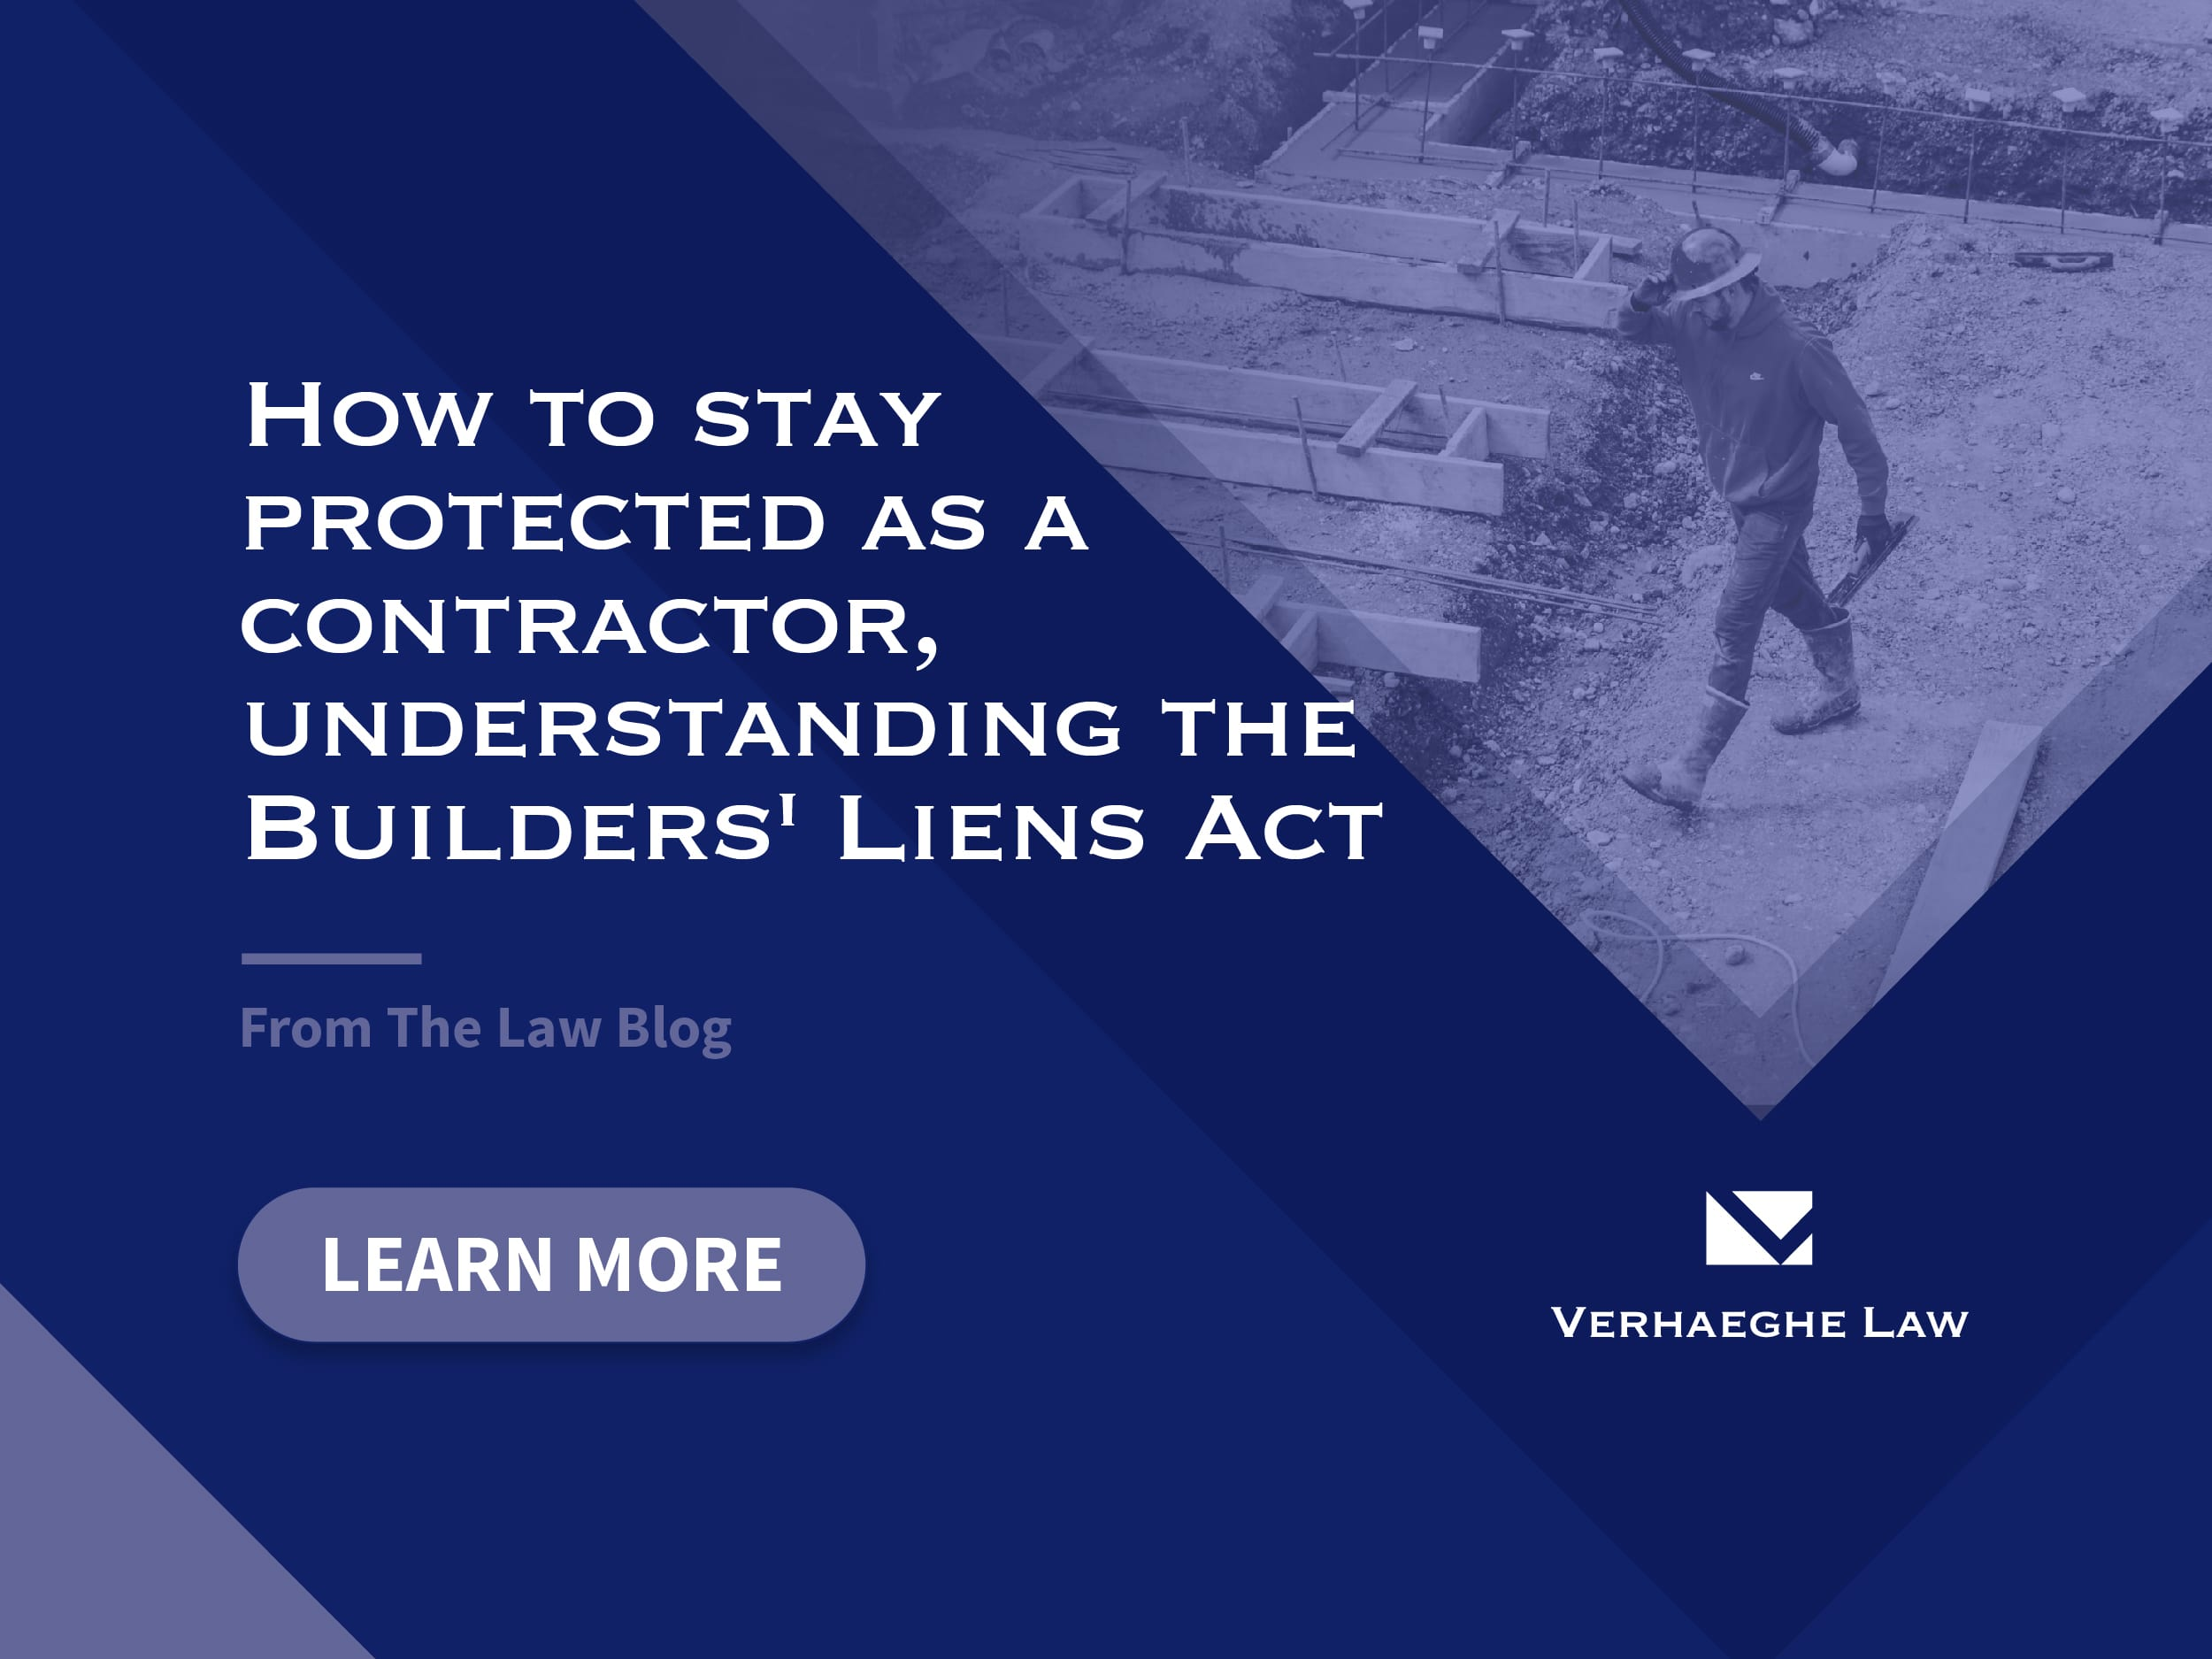 How to stay protected as a contractor: understanding the Builders' Lien Act